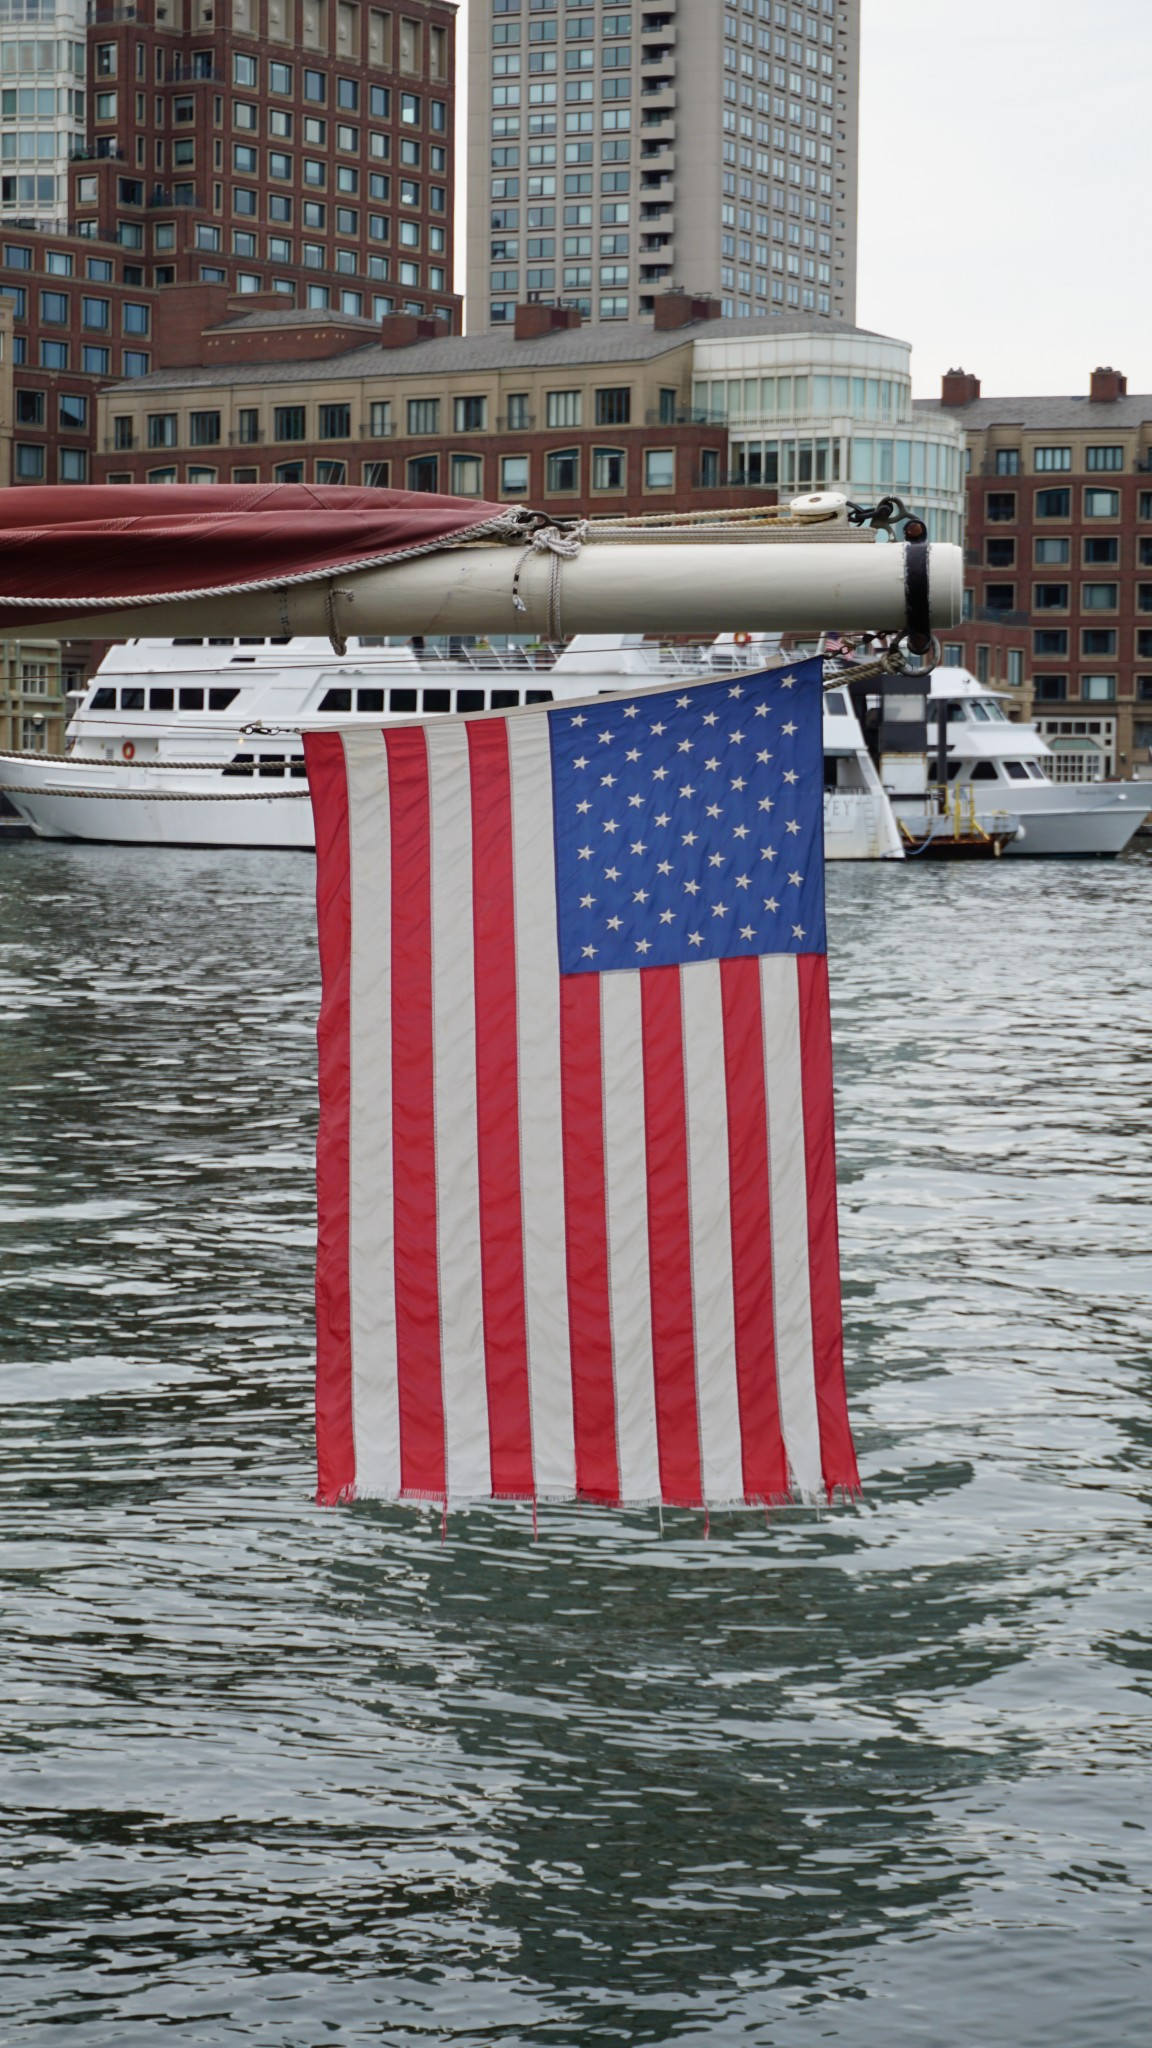 american flag boston harbor, the-alyst.com